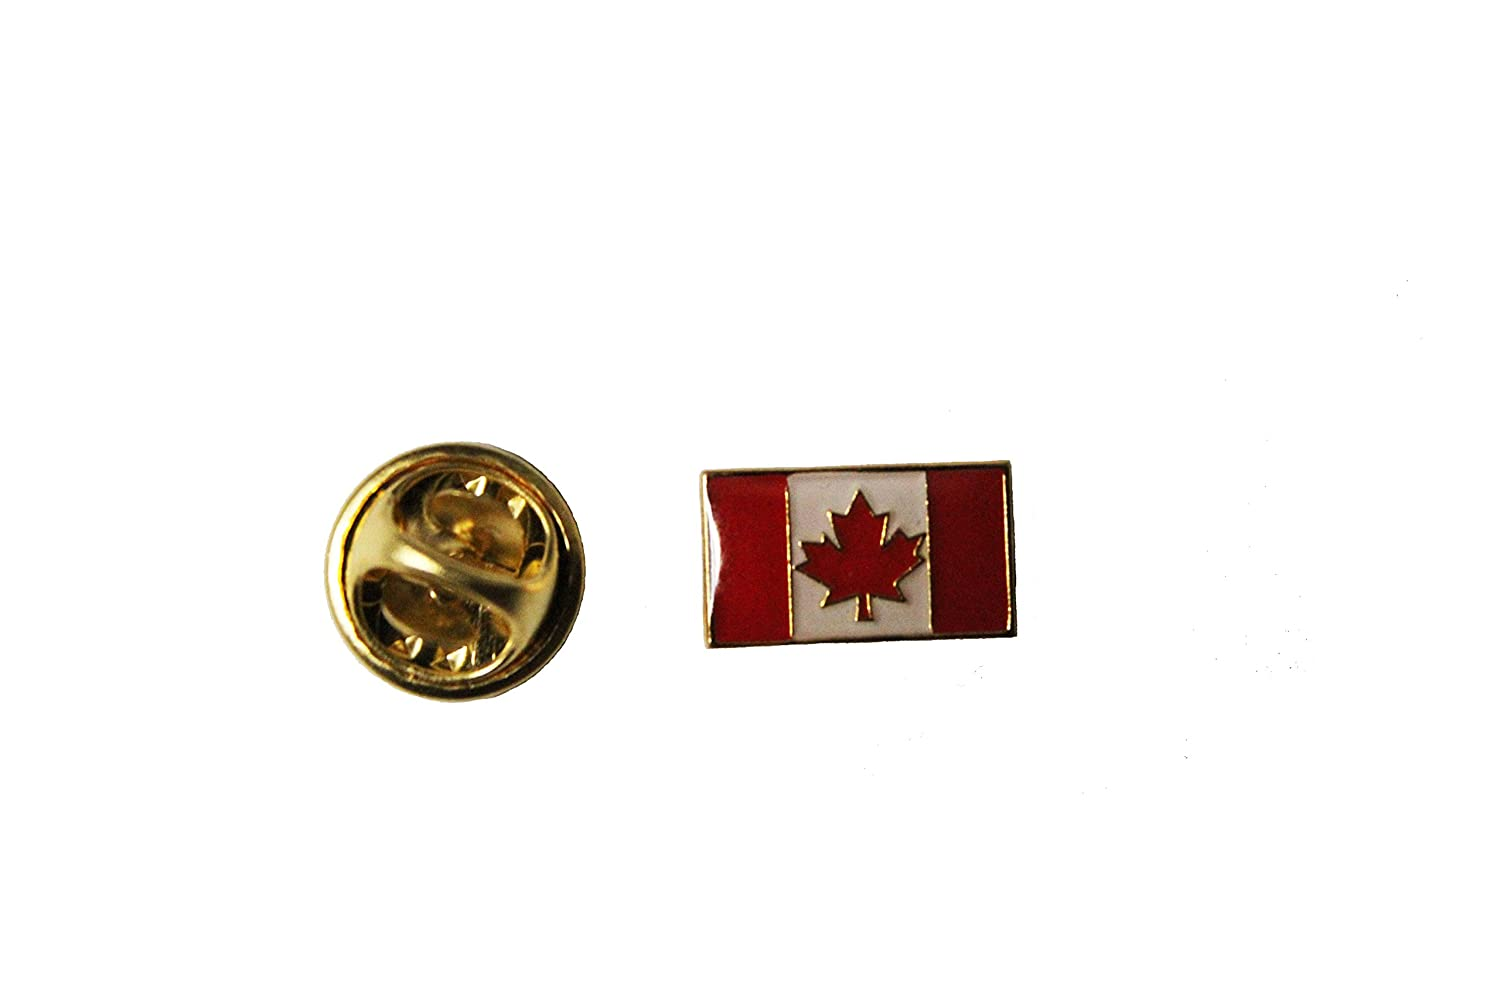 Canada Country Flag Extra Small Lapel Pin Badge Size : 0.5 x 0.3 inch (1.3 x 0.8 cm) New _